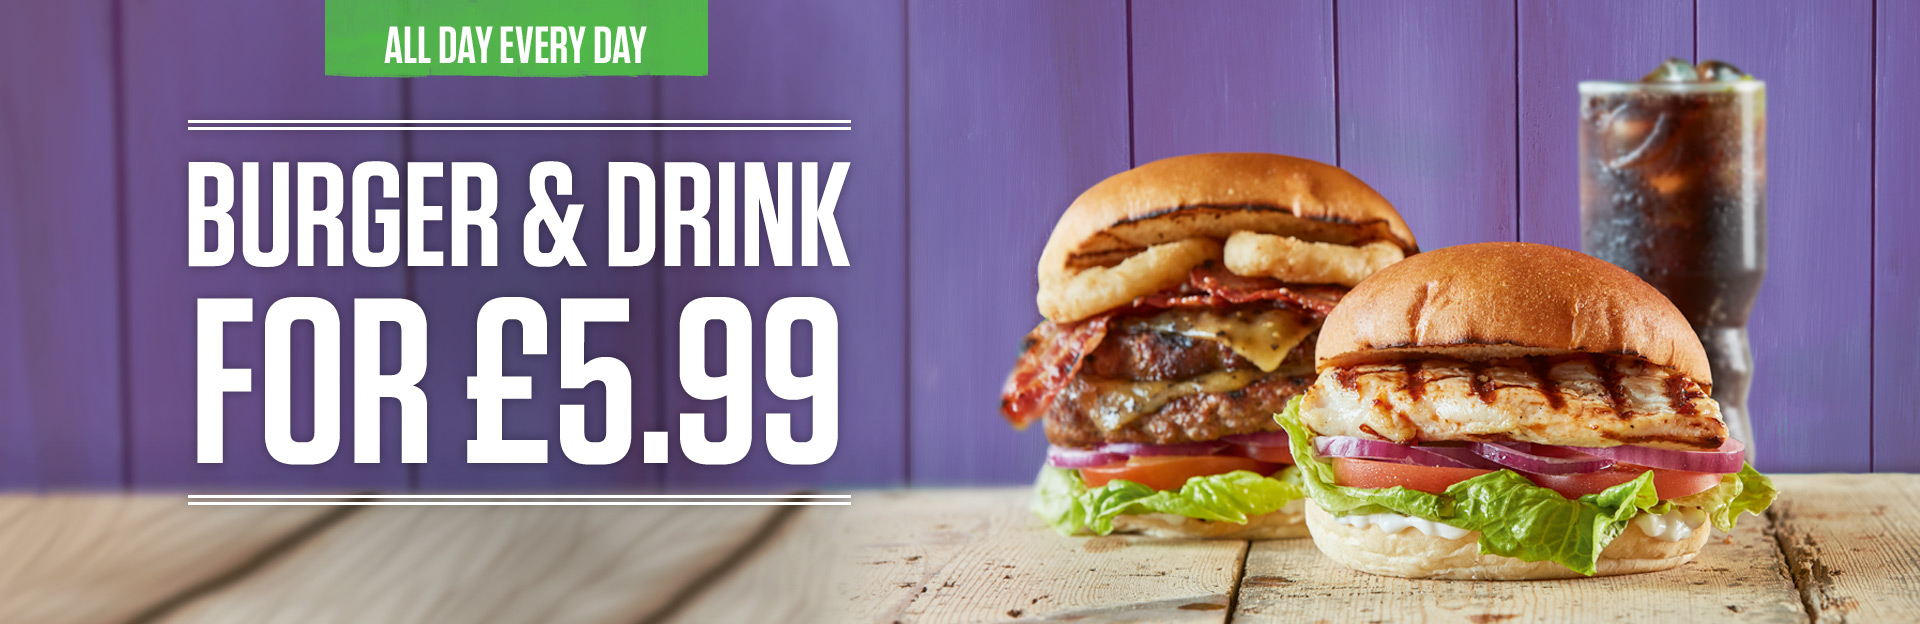 Burger and Drink Deal at The Turmut-Hoer